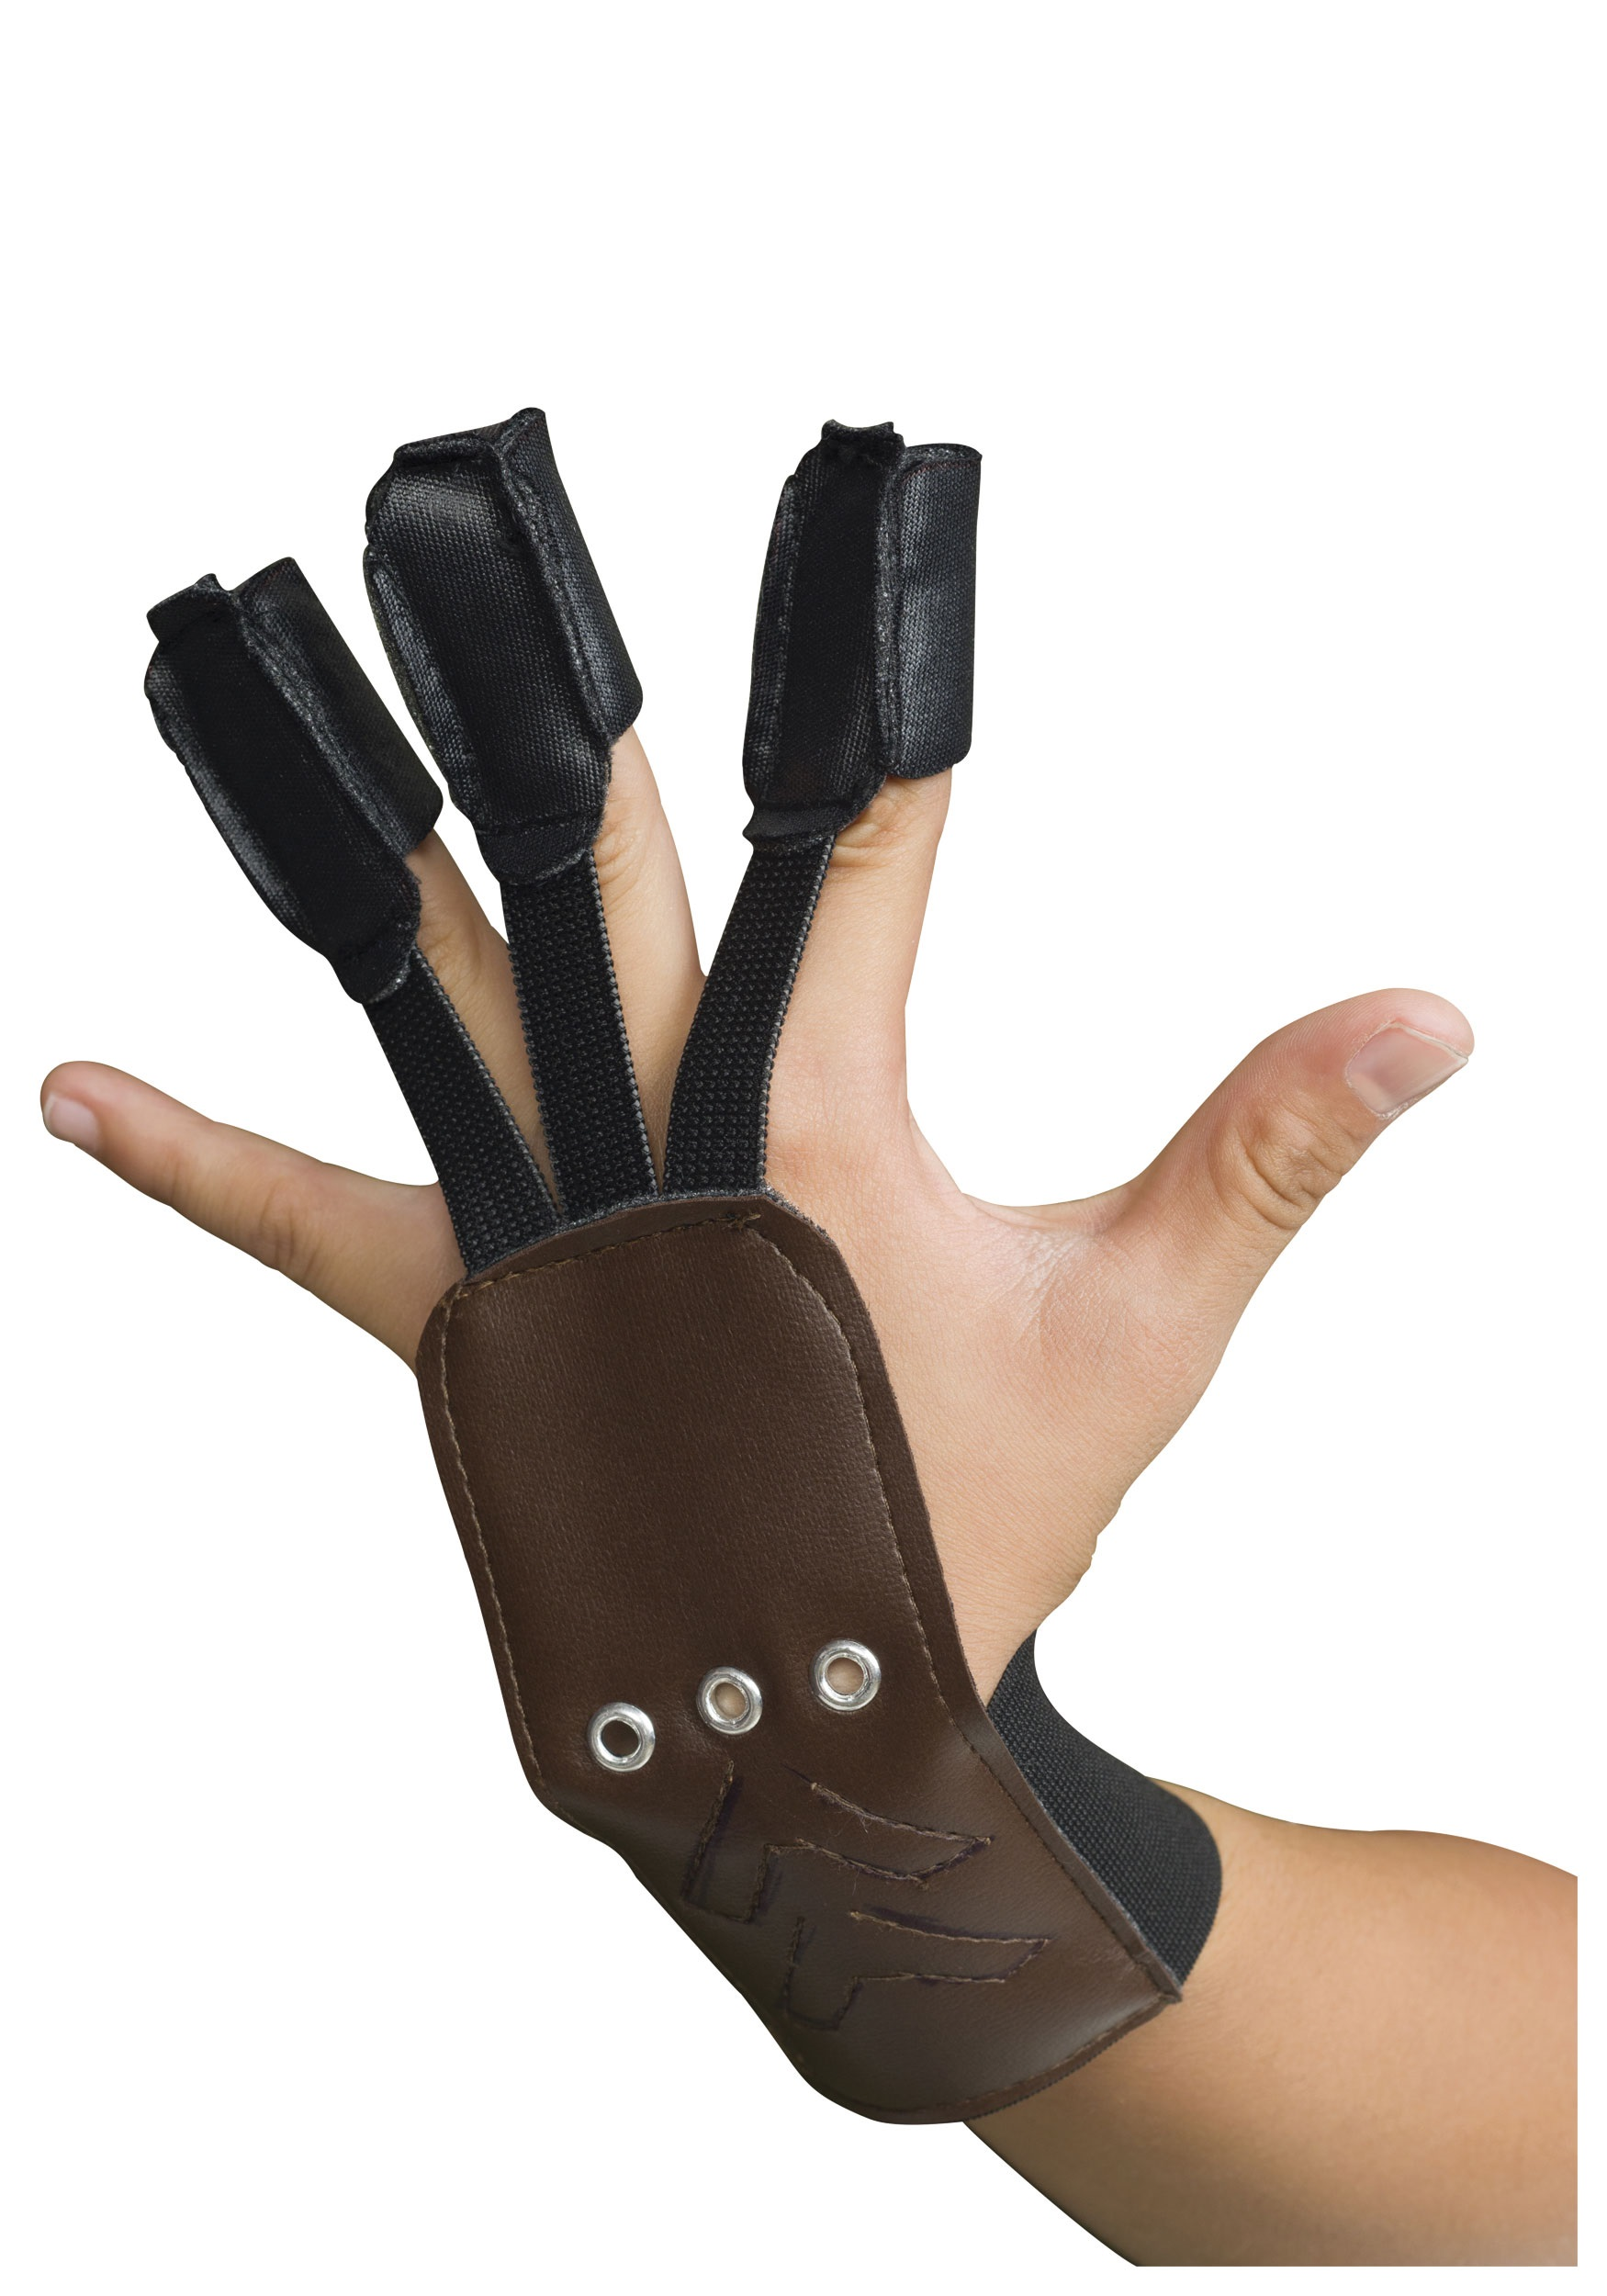 Child Hawkeye Avengers 2 Gauntlets  sc 1 st  Halloween Costumes & Avengers Hawkeye Costumes for Kids u0026 Adults - HalloweenCostumes.com